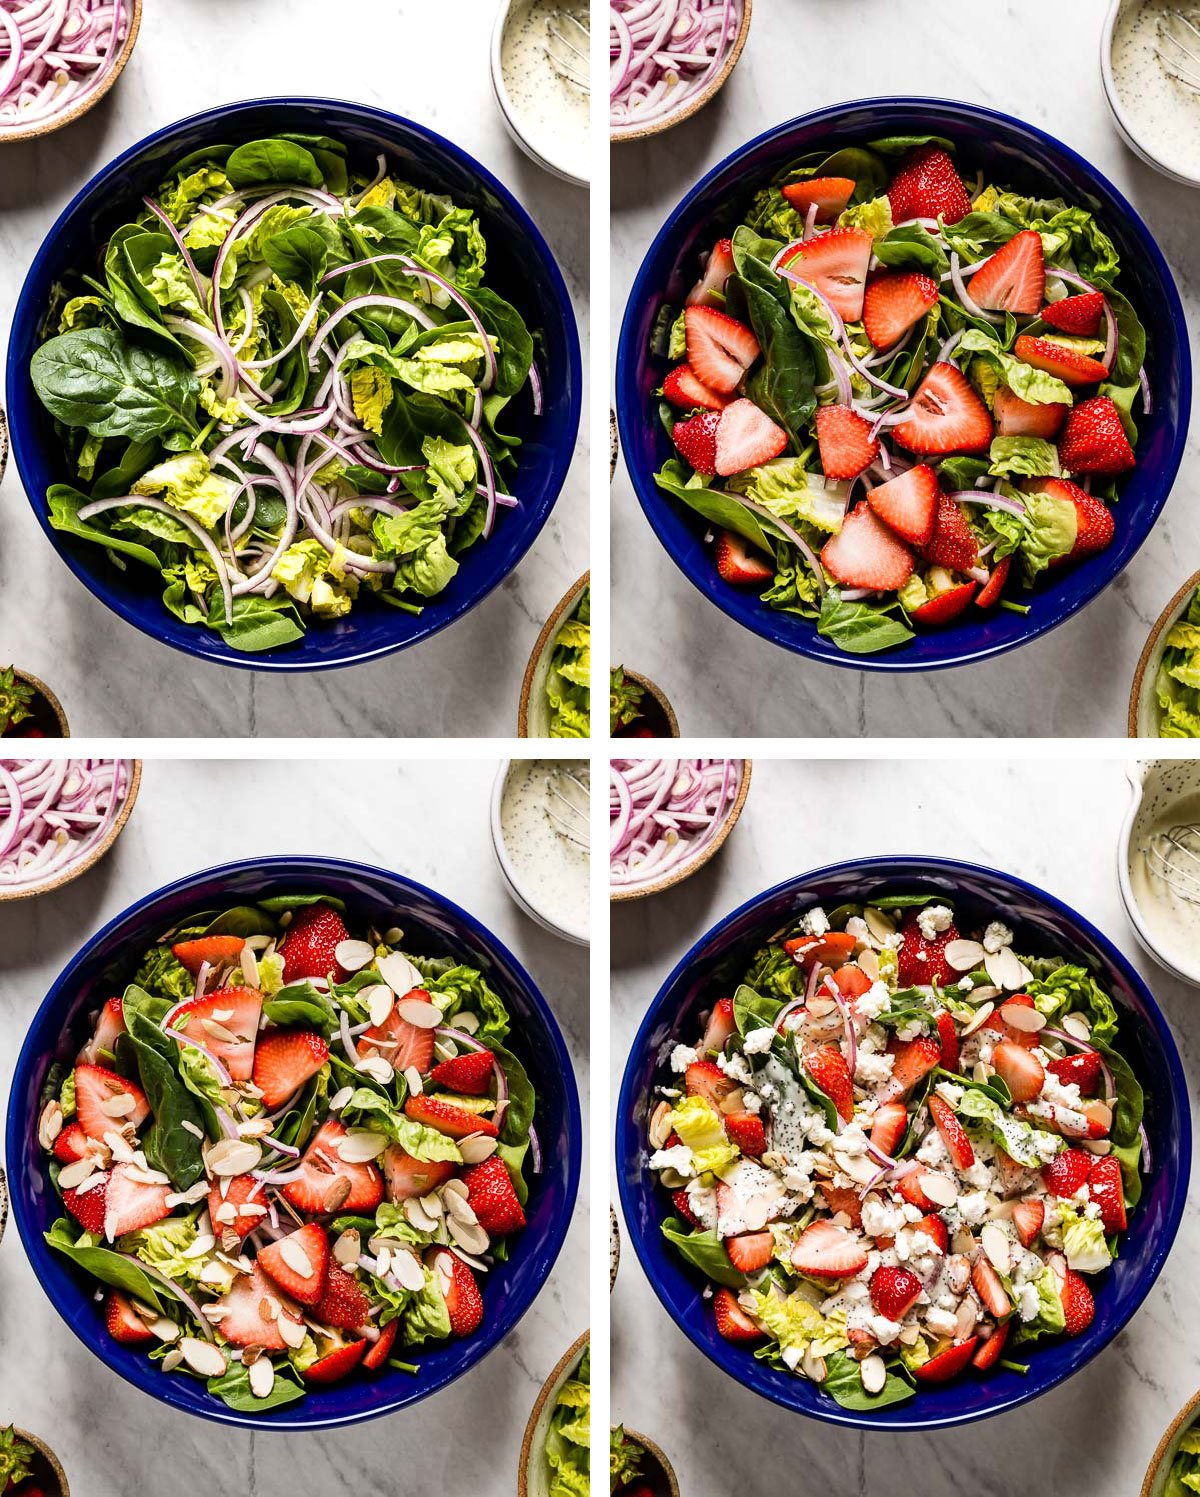 A collage of photos showing how to make strawberry salad